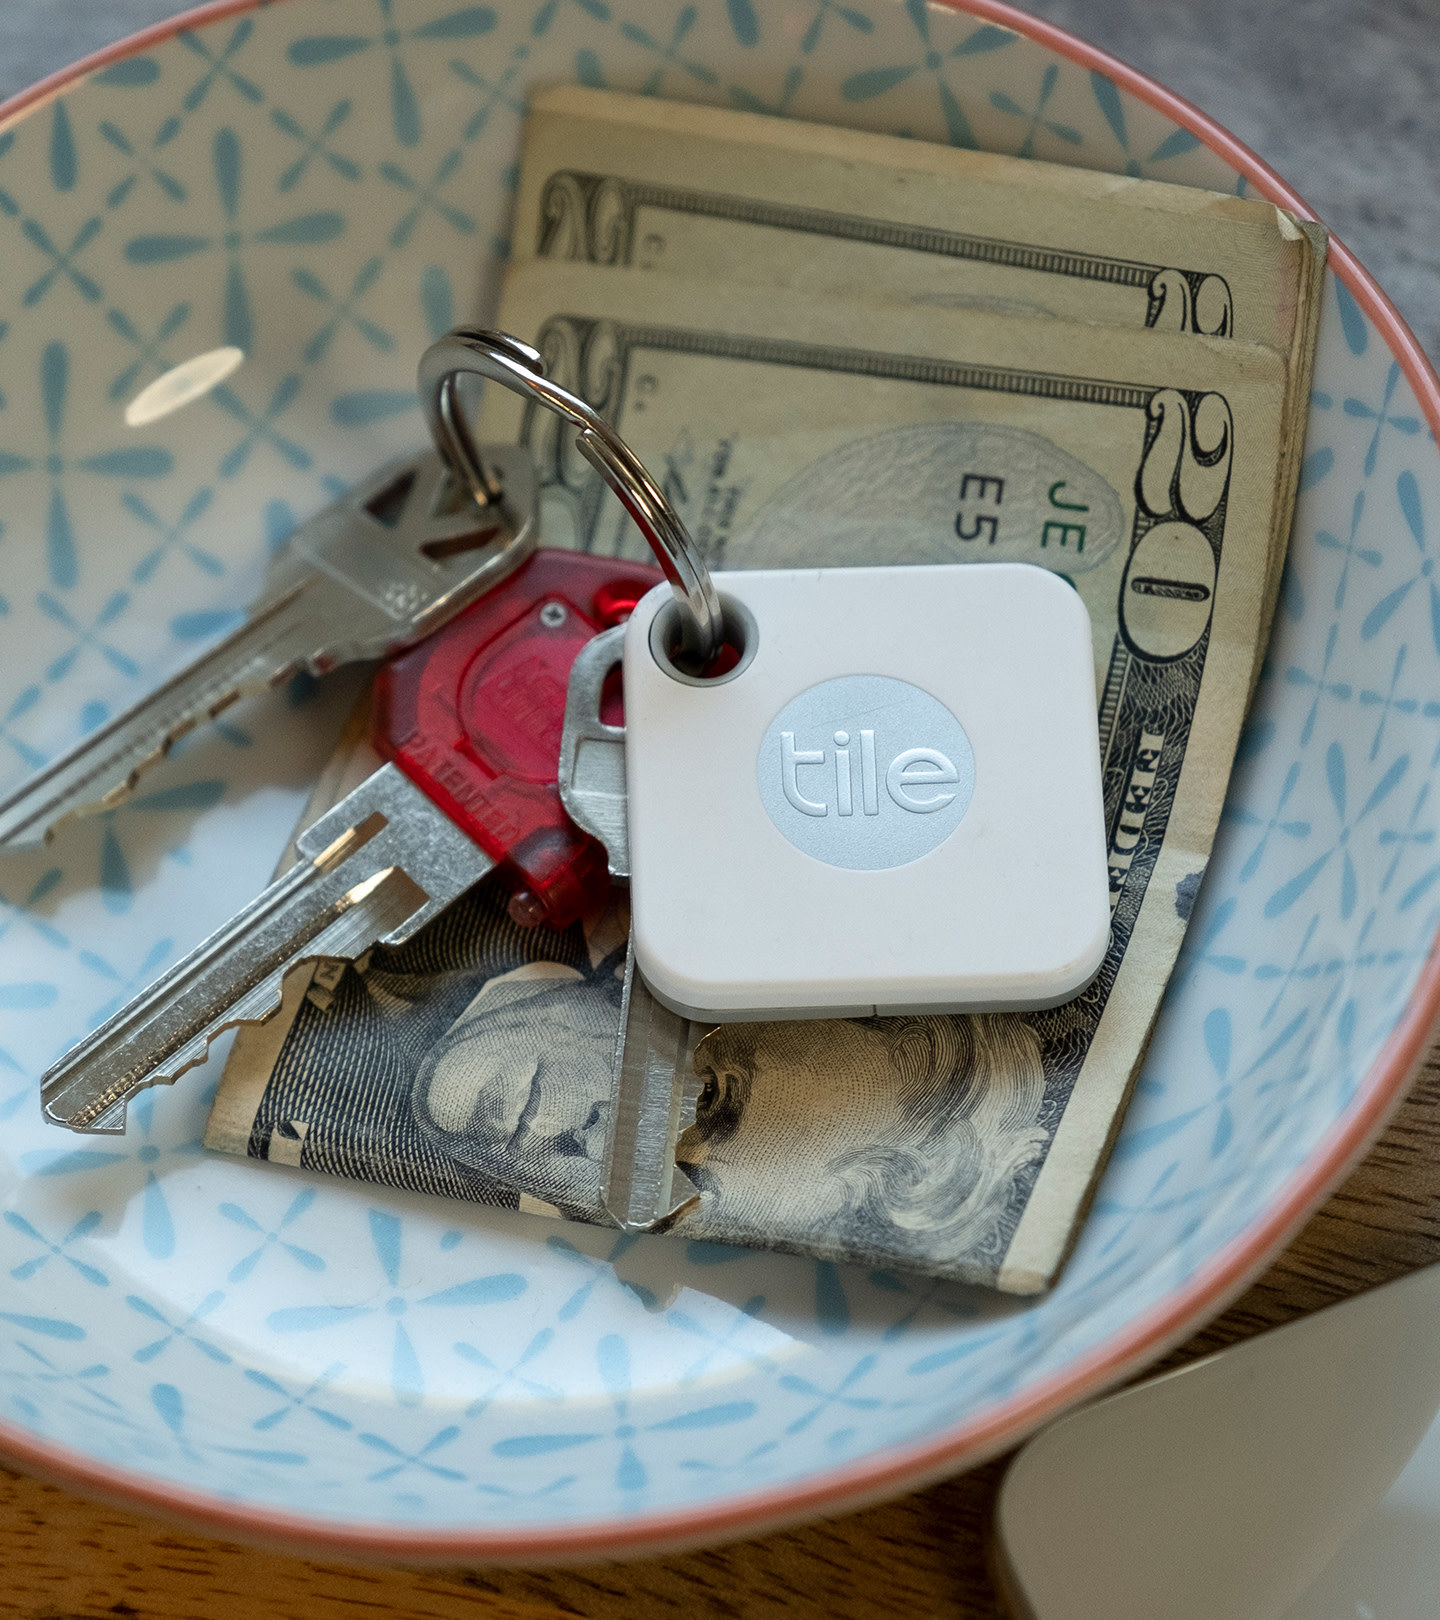 The square Bluetooth tracker on a keychain